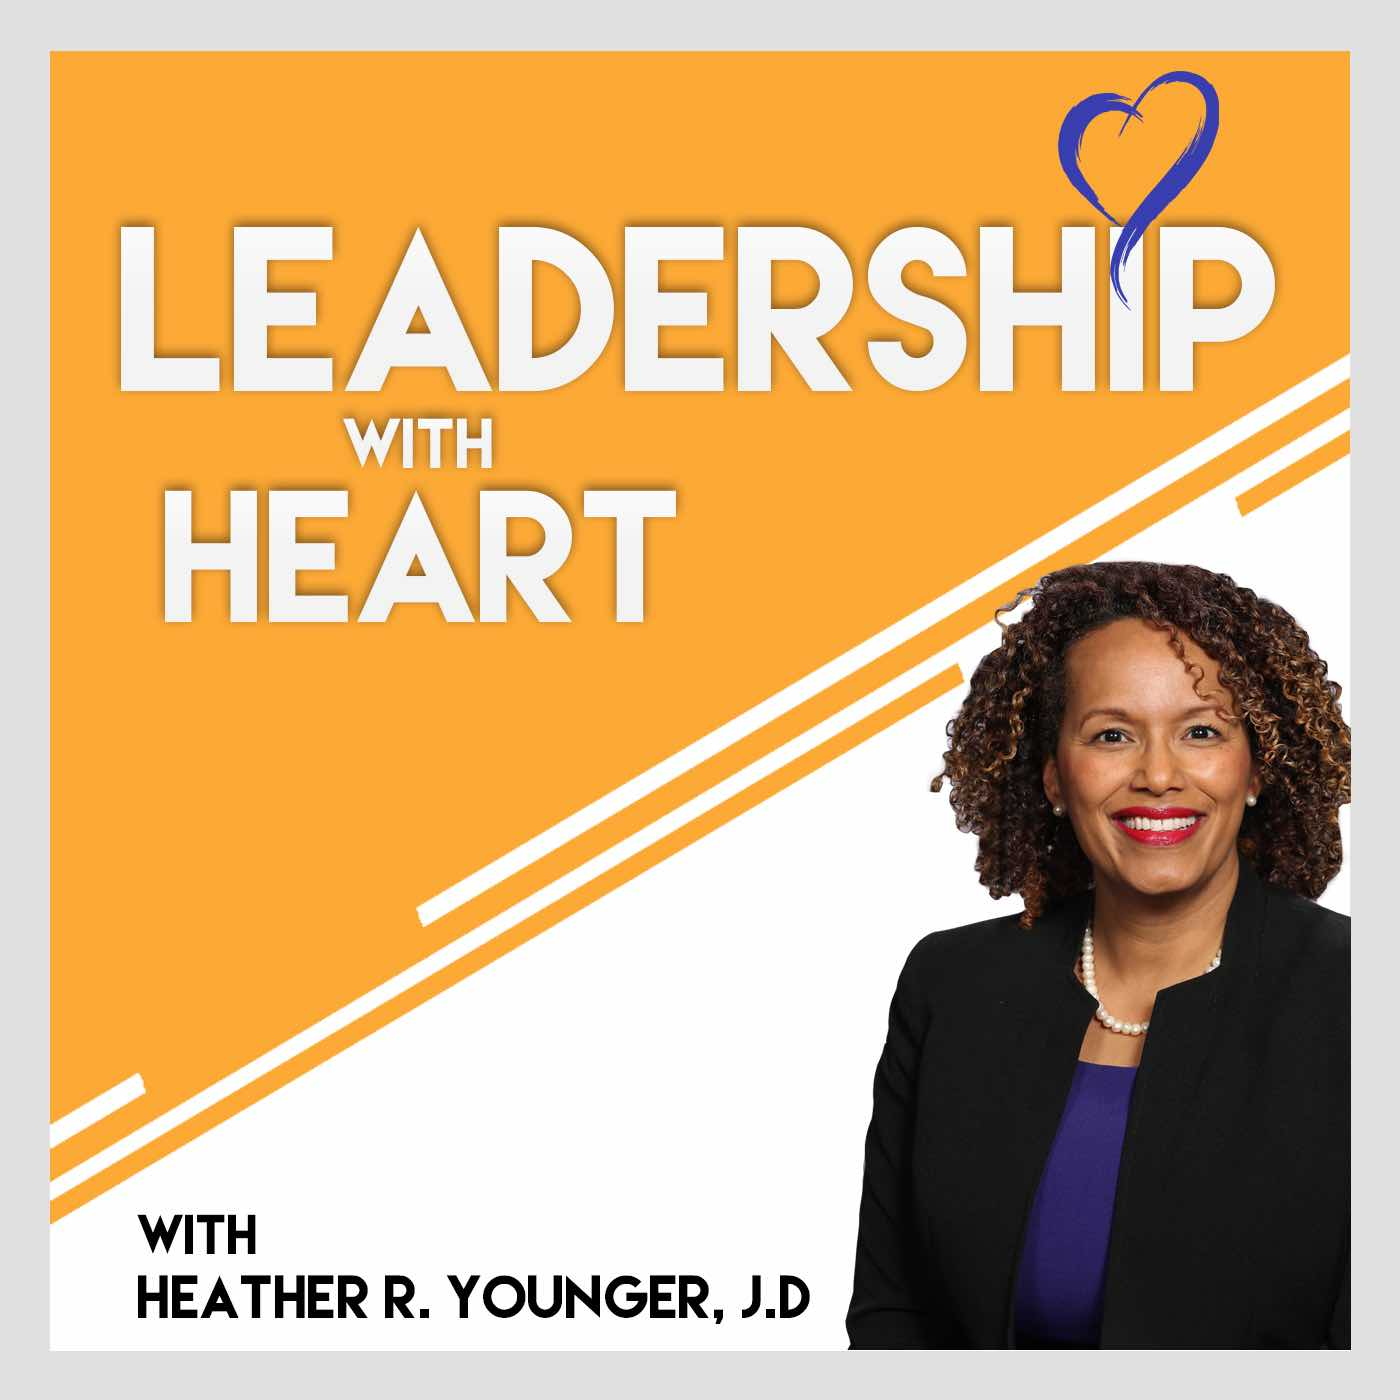 158: Leaders with Heart are Committed to Doing Better